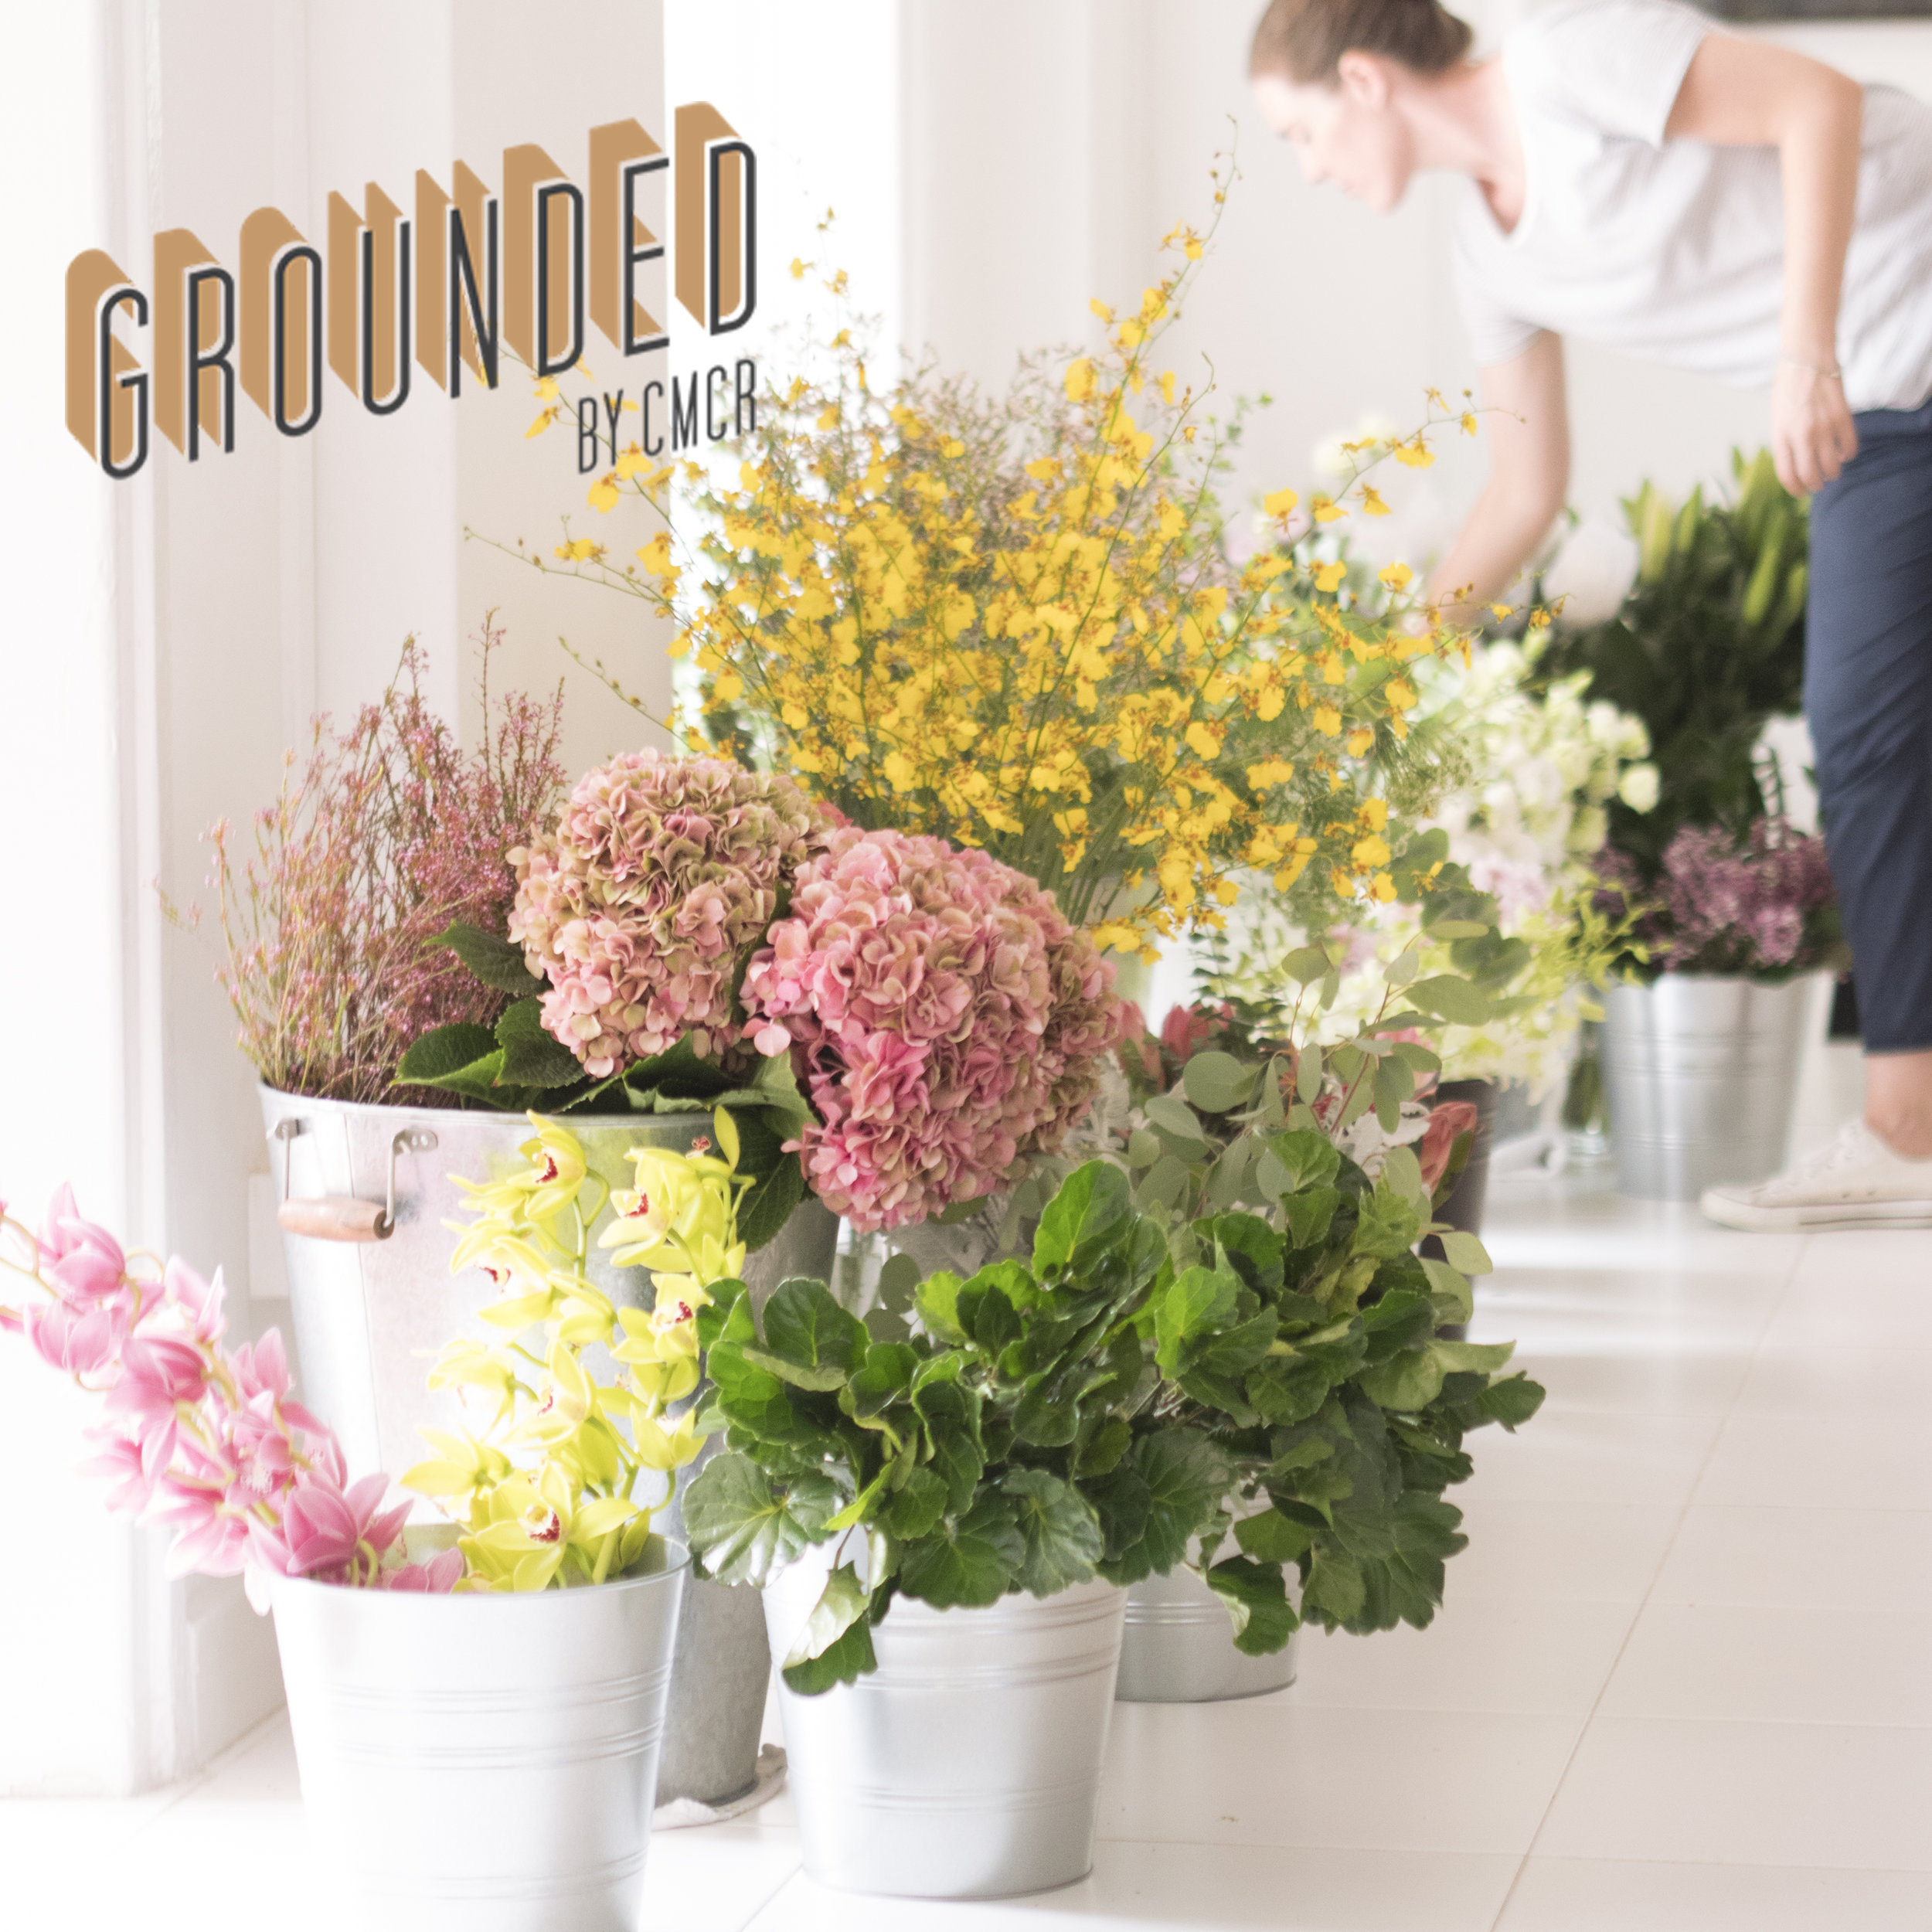 Flowers With Grounded.jpg